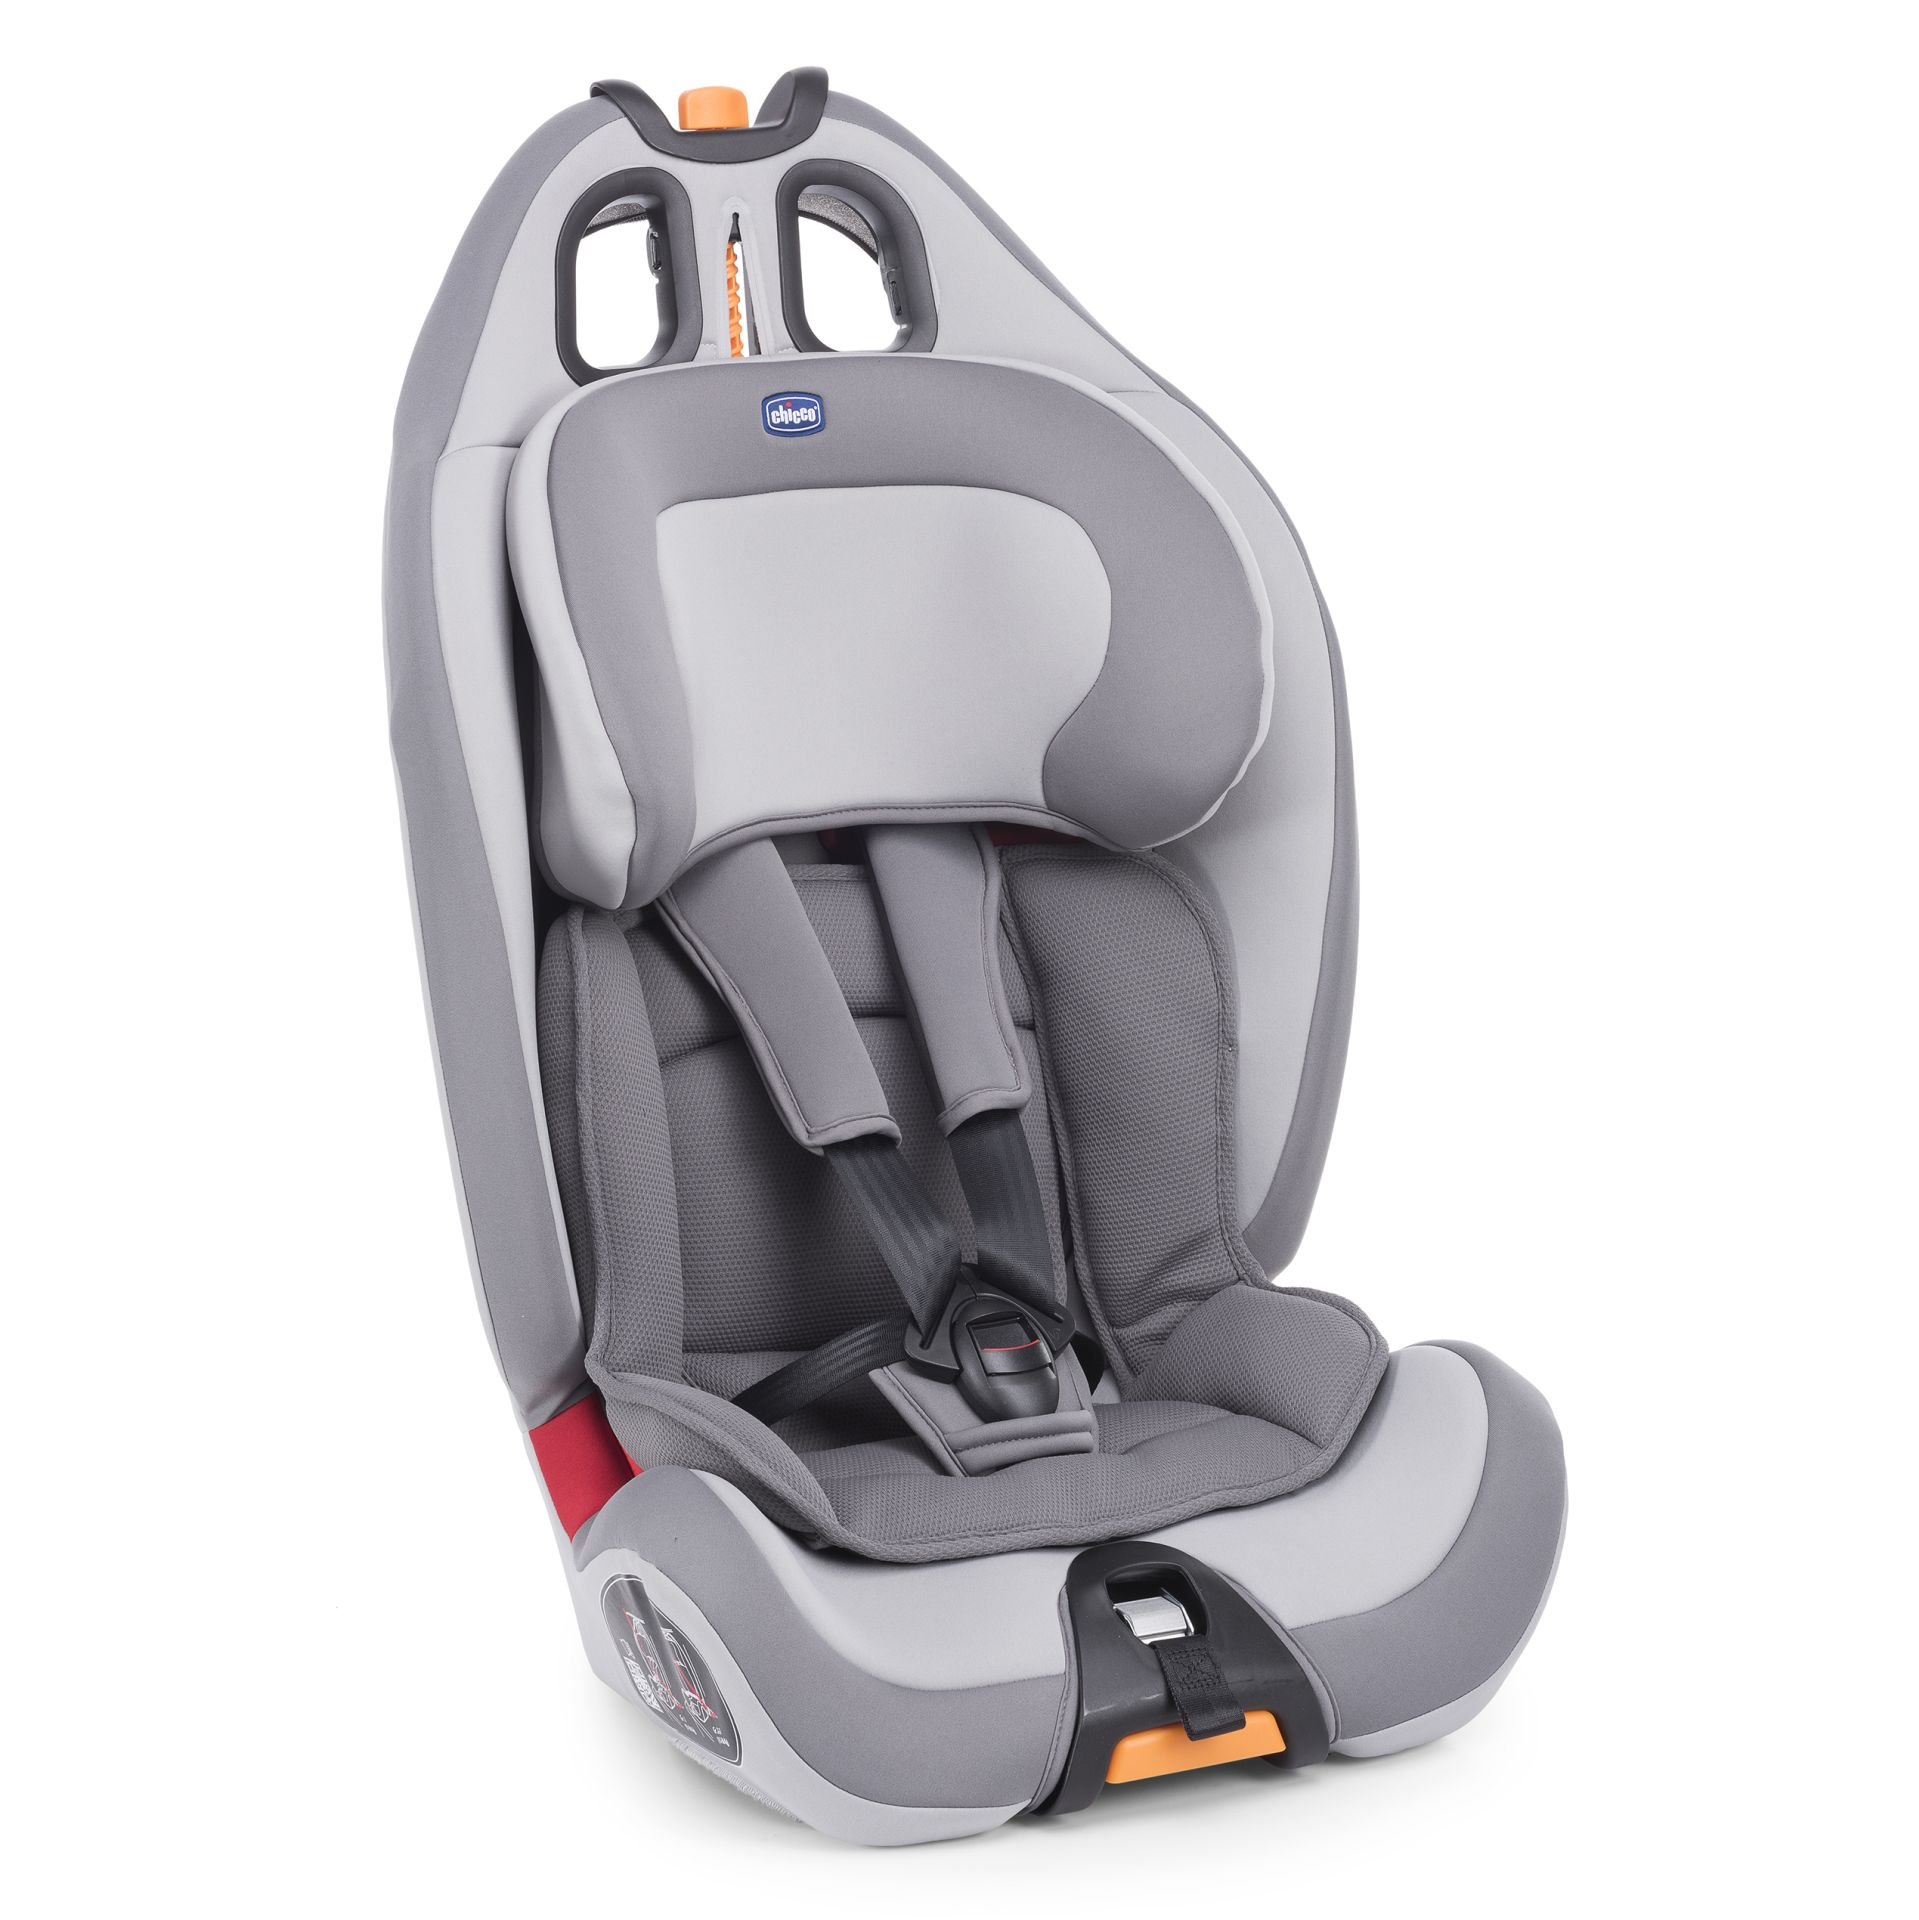 chicco car seat gro up 1 2 3 2018 elegance buy at kidsroom car seats. Black Bedroom Furniture Sets. Home Design Ideas